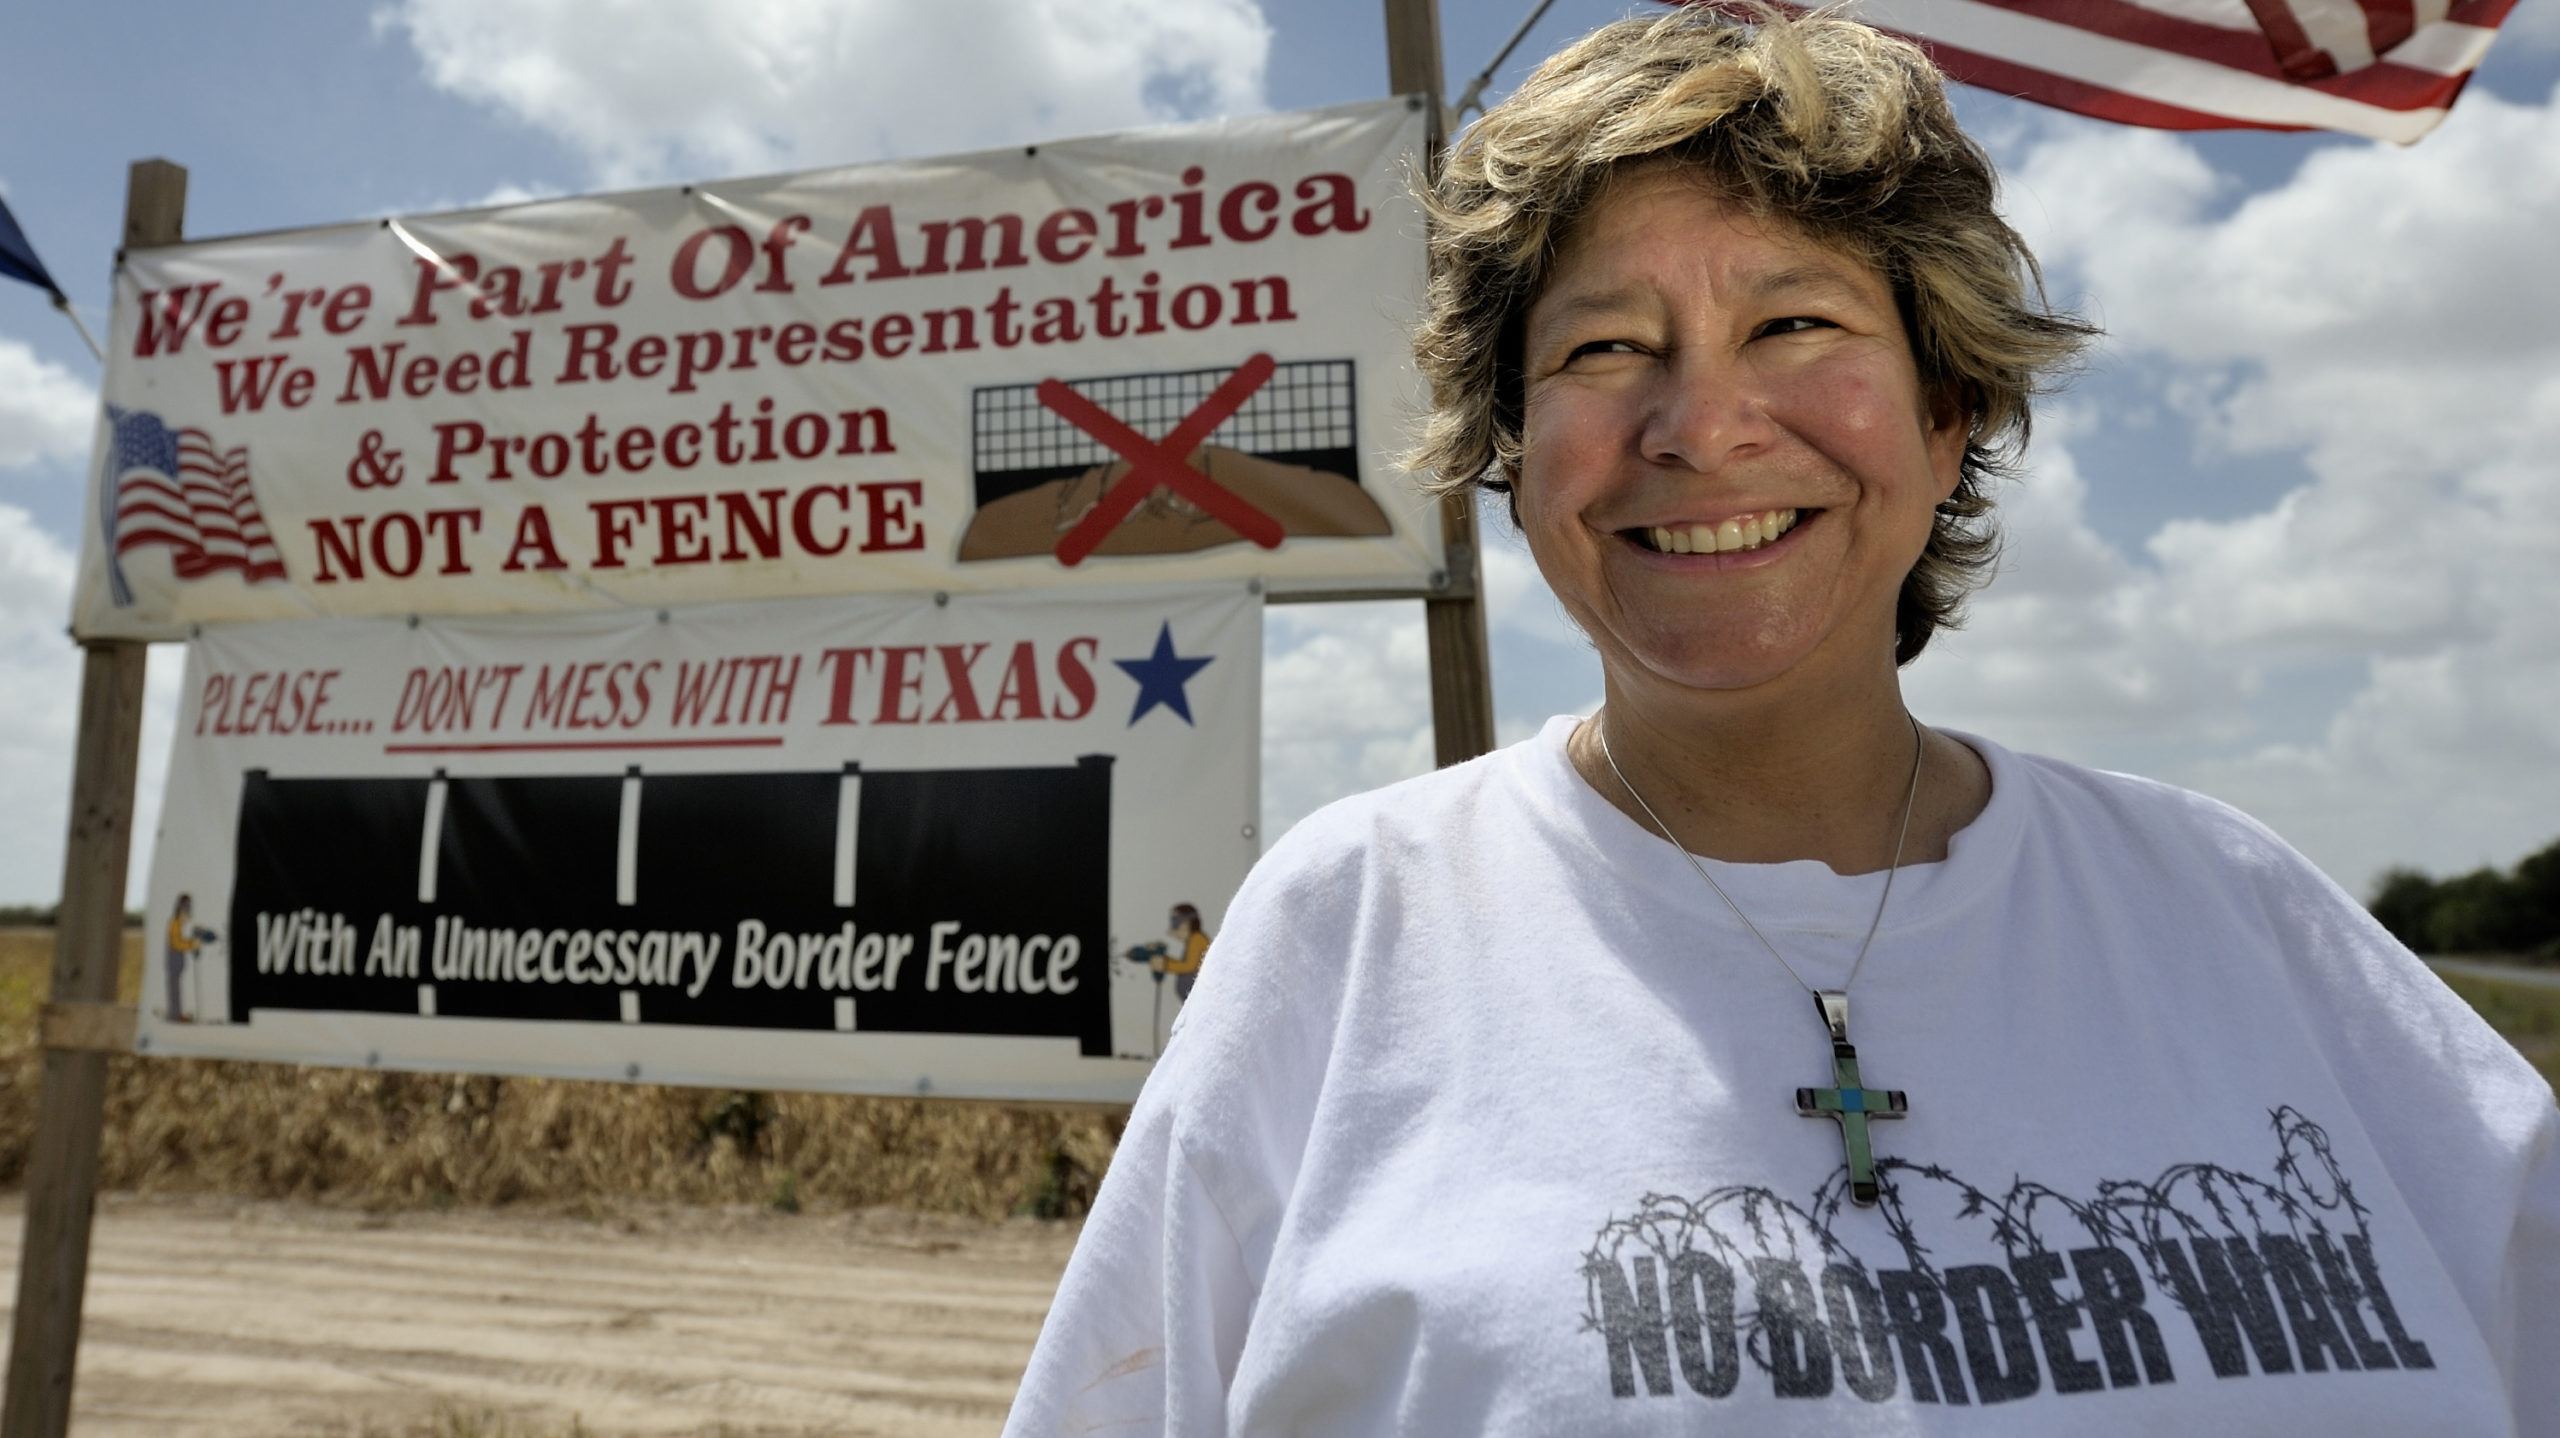 "Cindy Johnson, white female deaconess, stands in front of a white sign by the Texas / Mexican boarder which reads: ""We're Part of America, We need Representation & Protection, NOT A FENCE"" and another sign which says, ""Please... DON'T MISS WITH TEXAS, with an unncessary border fence."" Cindy is weraring a shirt that says, ""No Border Wall"" and a crucifix necklace. An American flag waves in the wind behind her."